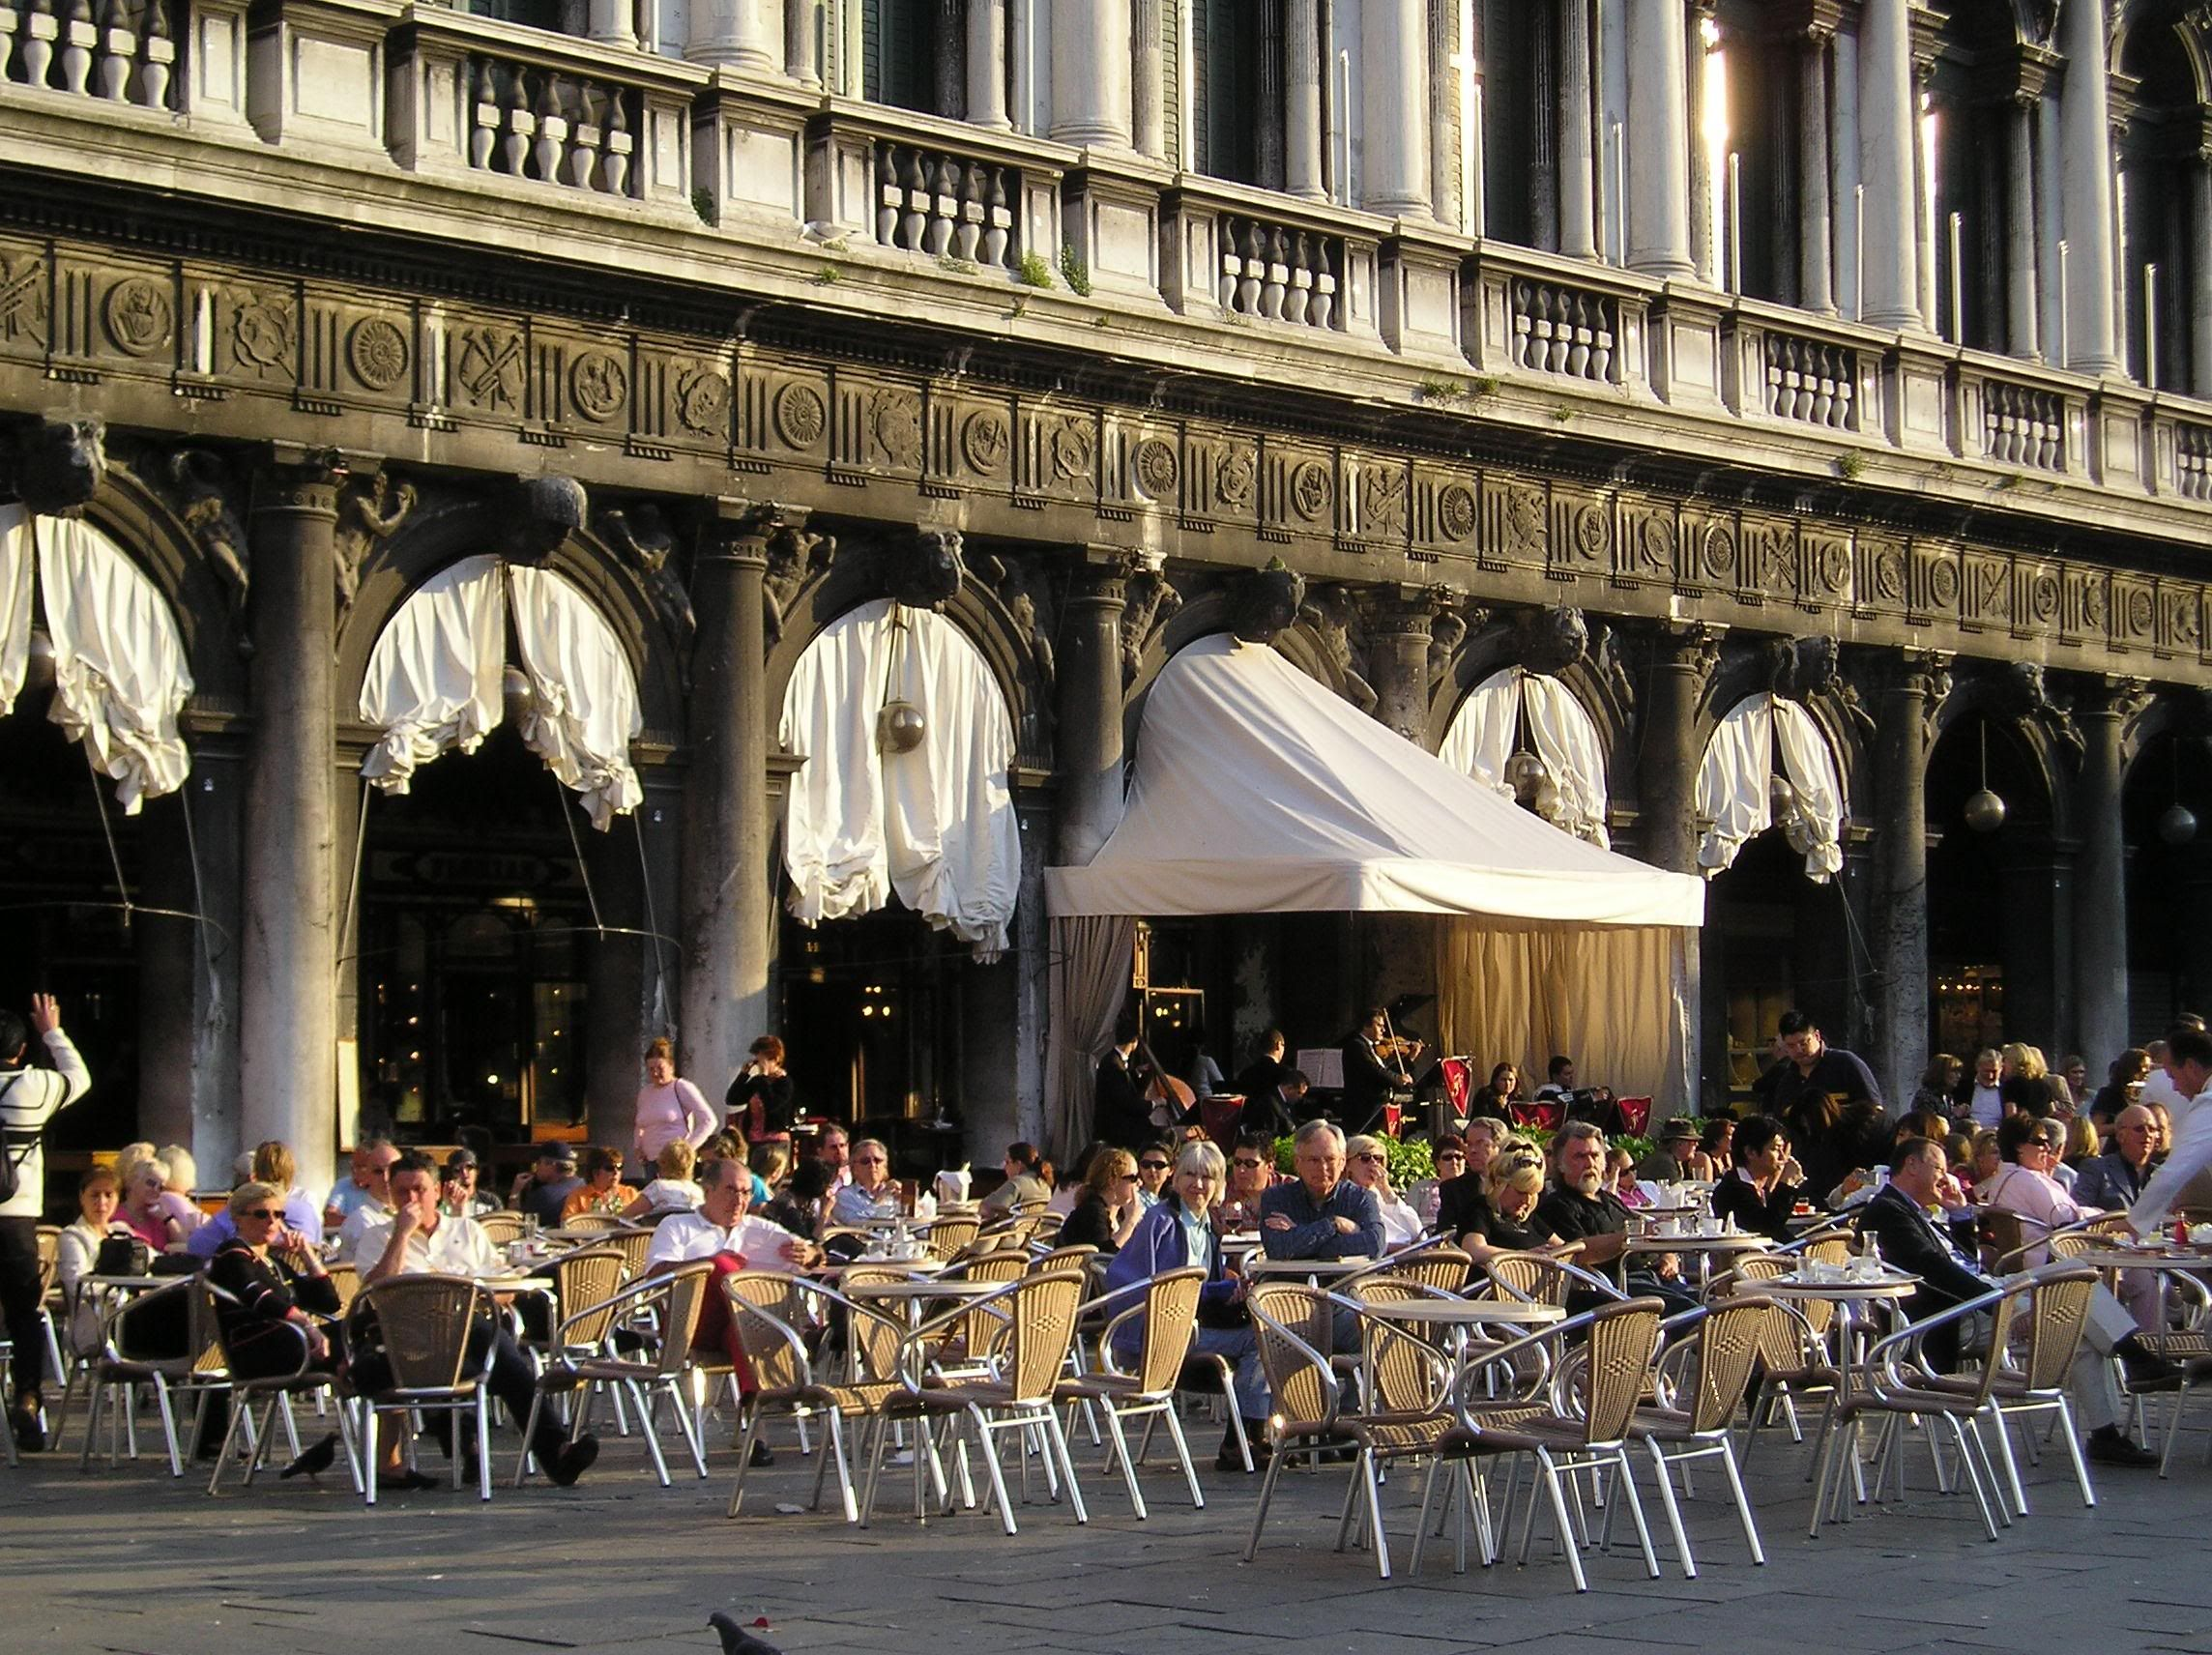 Venice Caffe Florian Piazza Di San Marco First Opened Its Doors In 1720 Loved Sipping Cappuccino And Romantic Honeymoon Destinations Venice Venice Italy